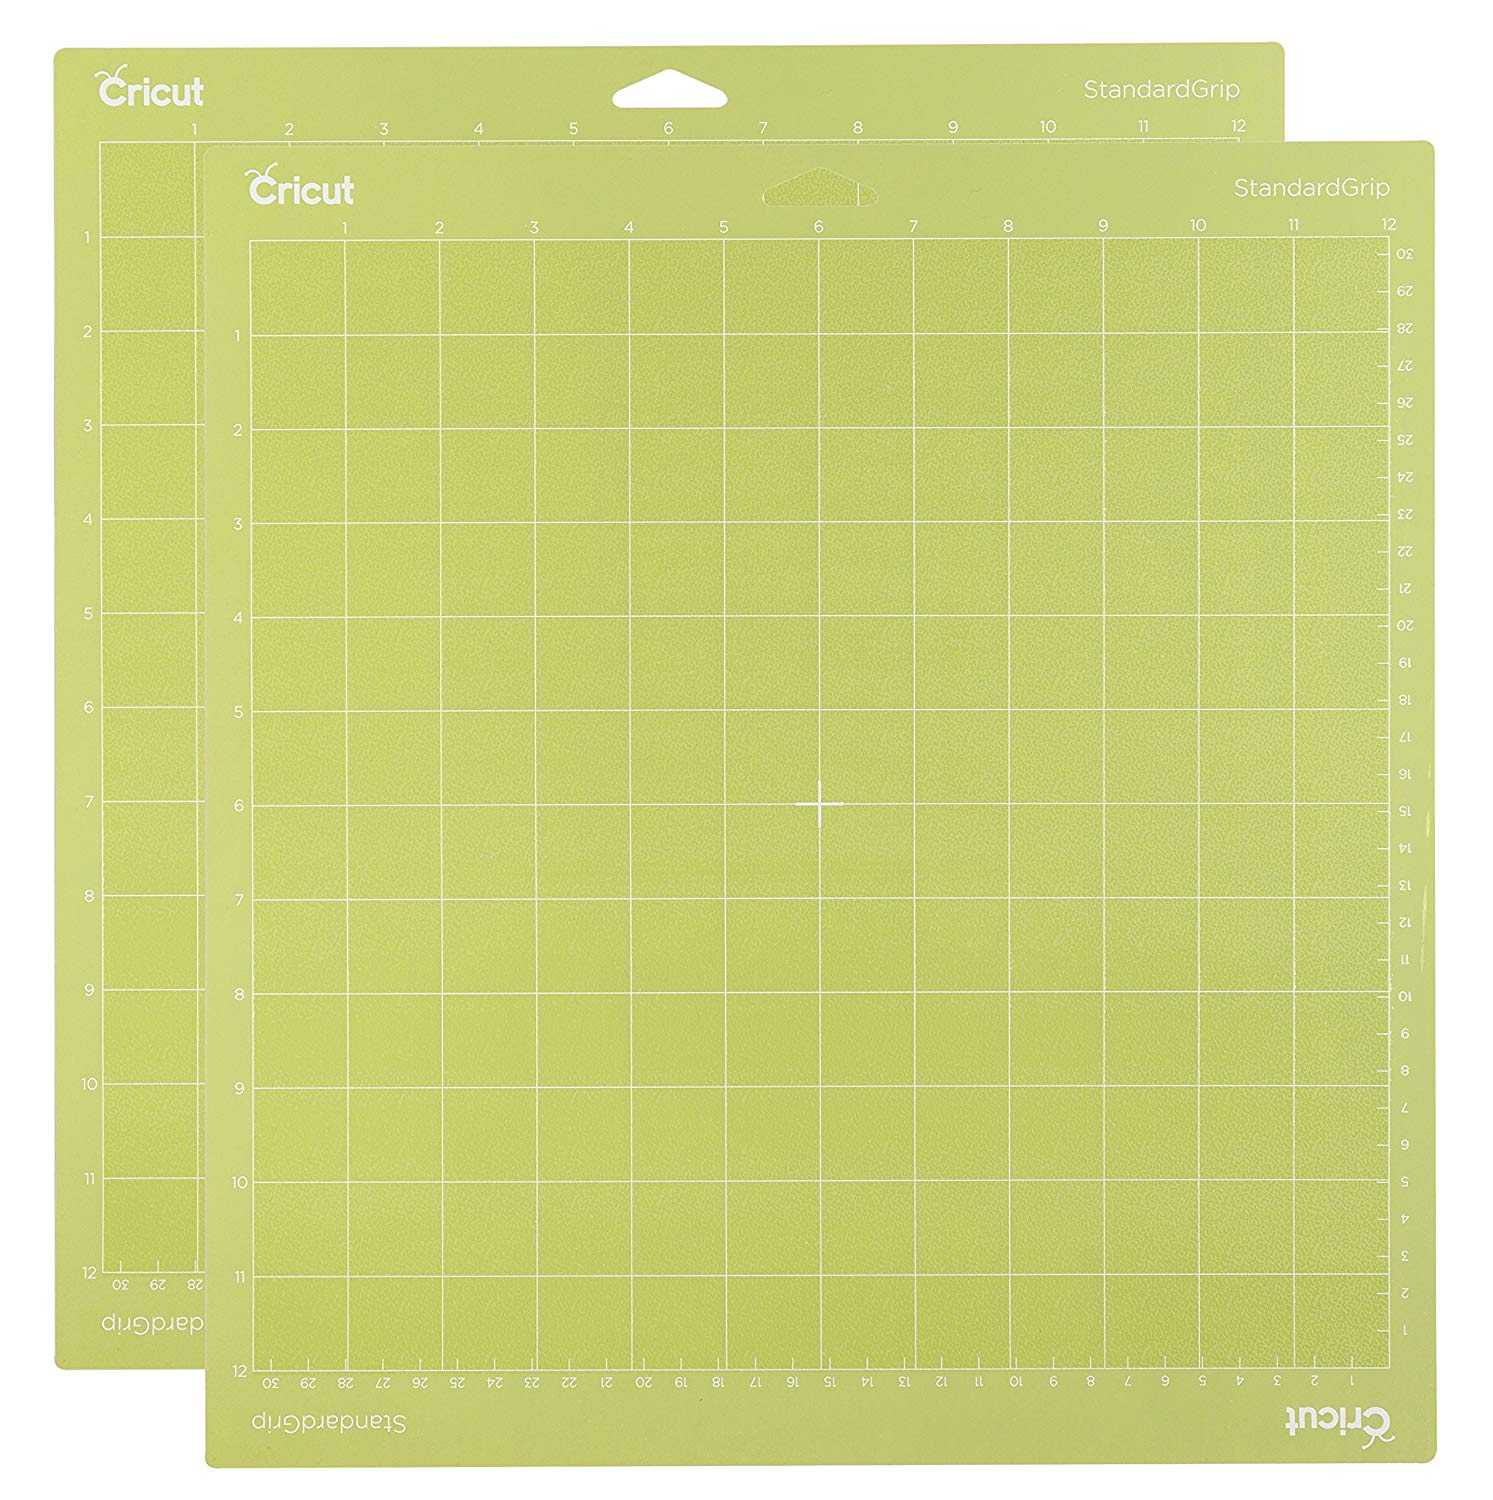 "Cricut Cutting Mats 12""X12"" Standard Grip / 2 Tapetes Cricut 12"""